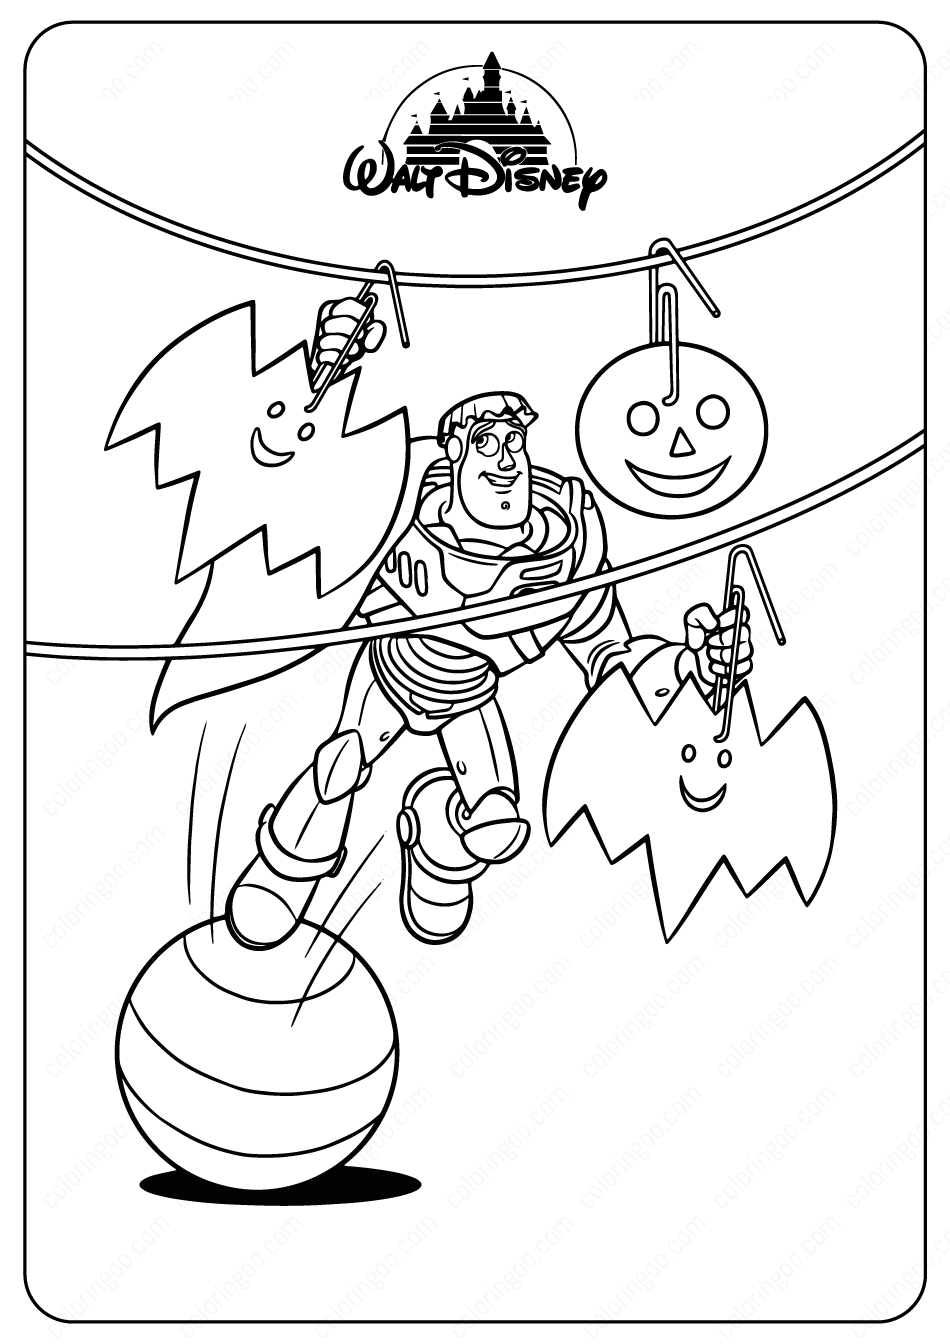 Buzz Halloween Coloring Pages Halloween Coloring Pages Halloween Coloring Disney Coloring Sheets